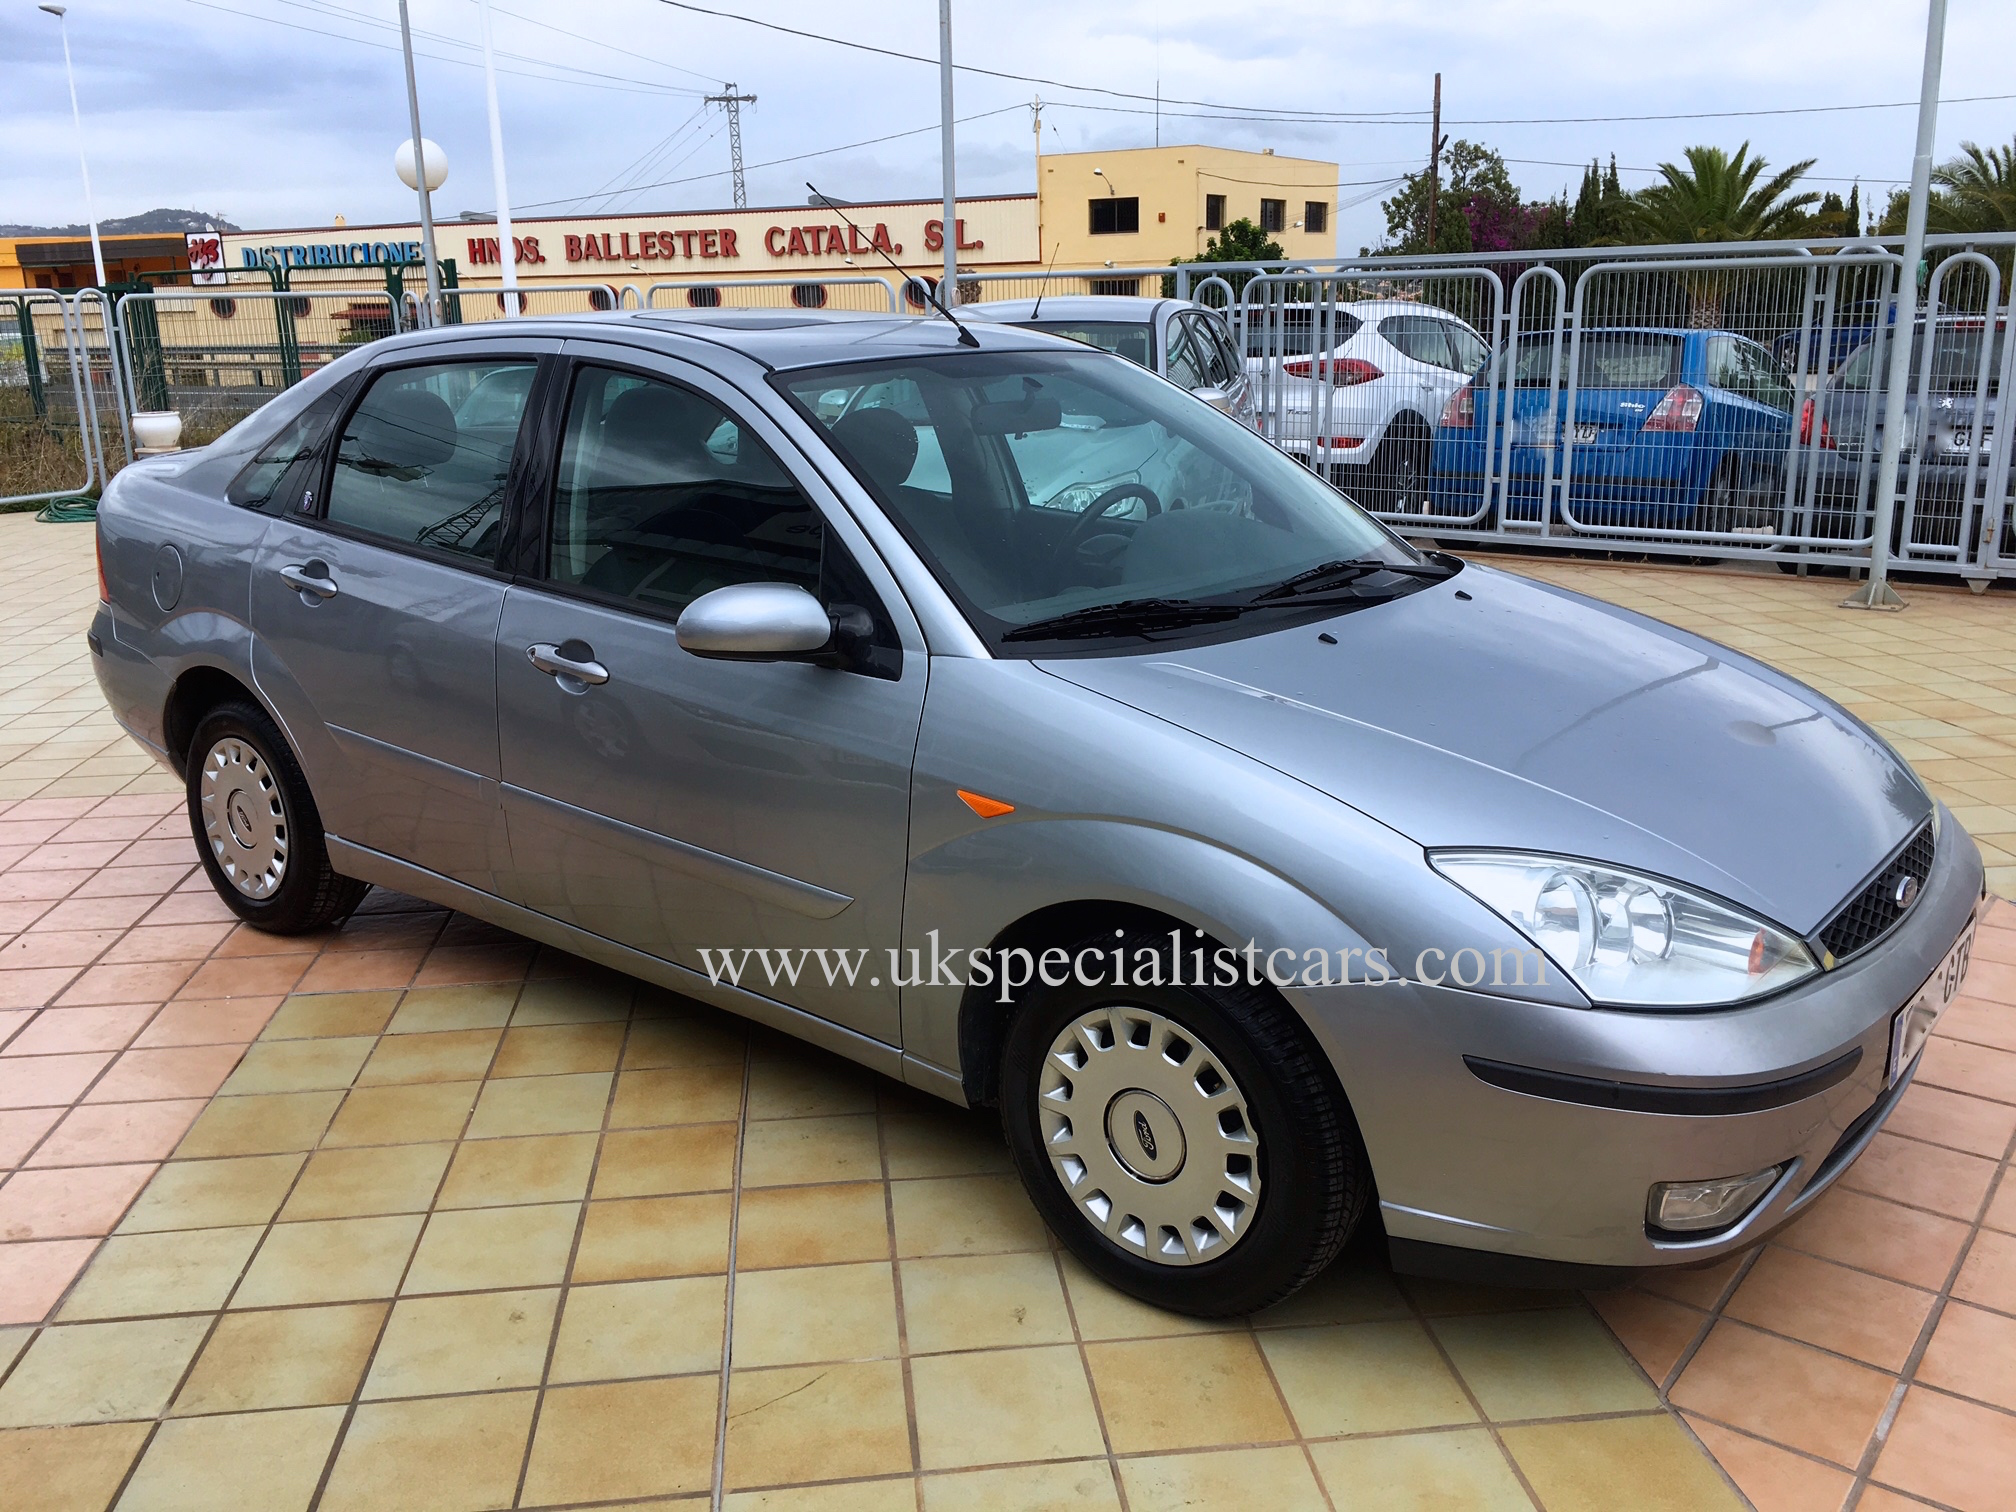 Ford Focus 1 6 Ghia Saloon Automatic Lhd In Spain